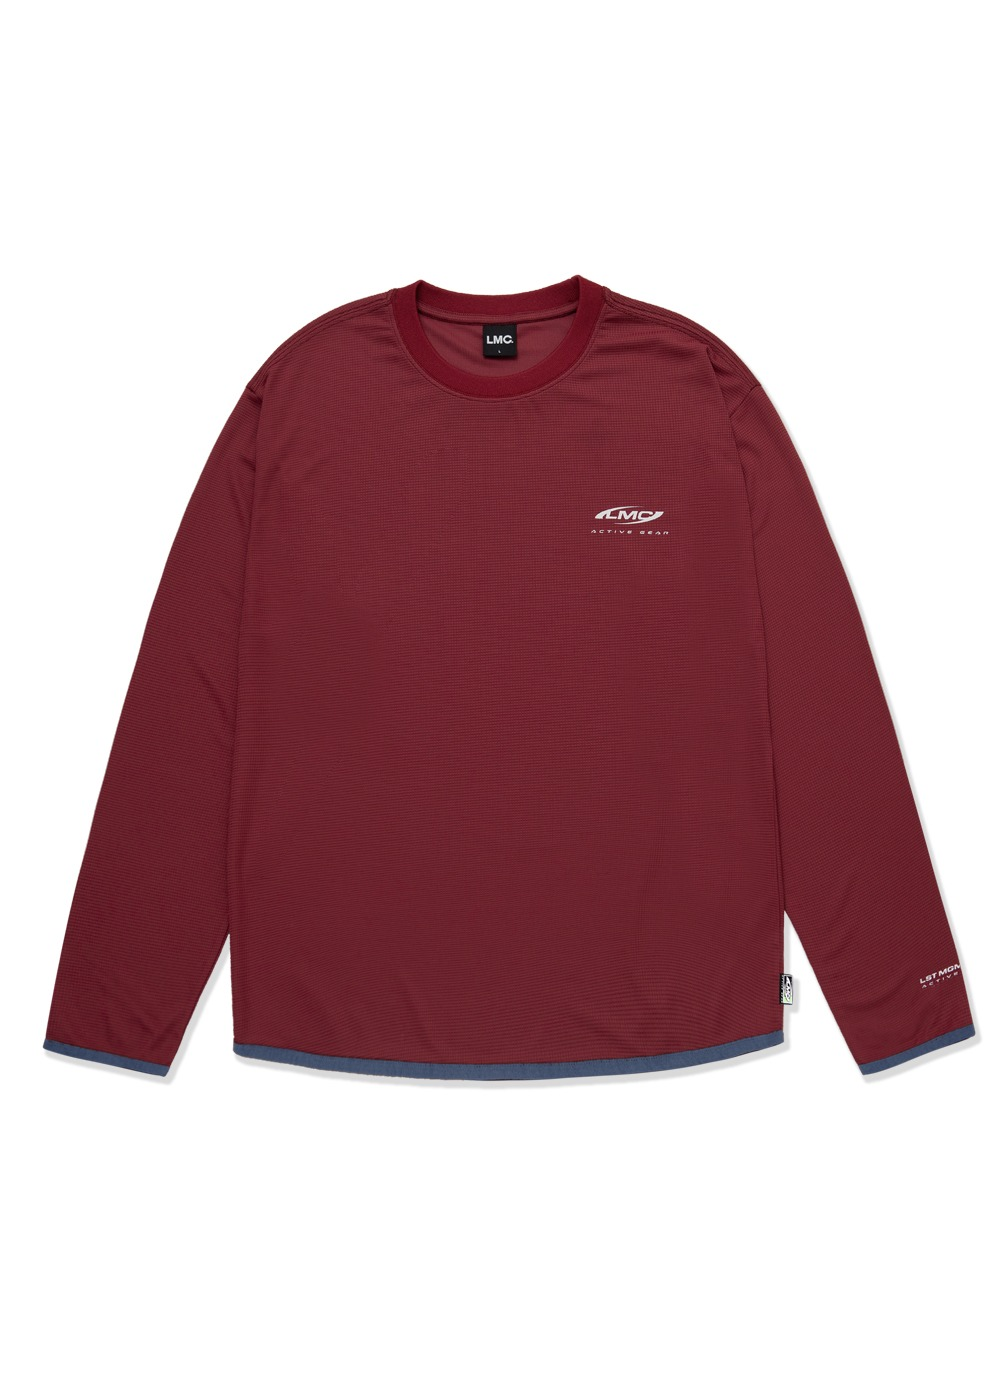 LMC ATB-UV+ ACTIVE GEAR LONG SLV JERSEY burgundy